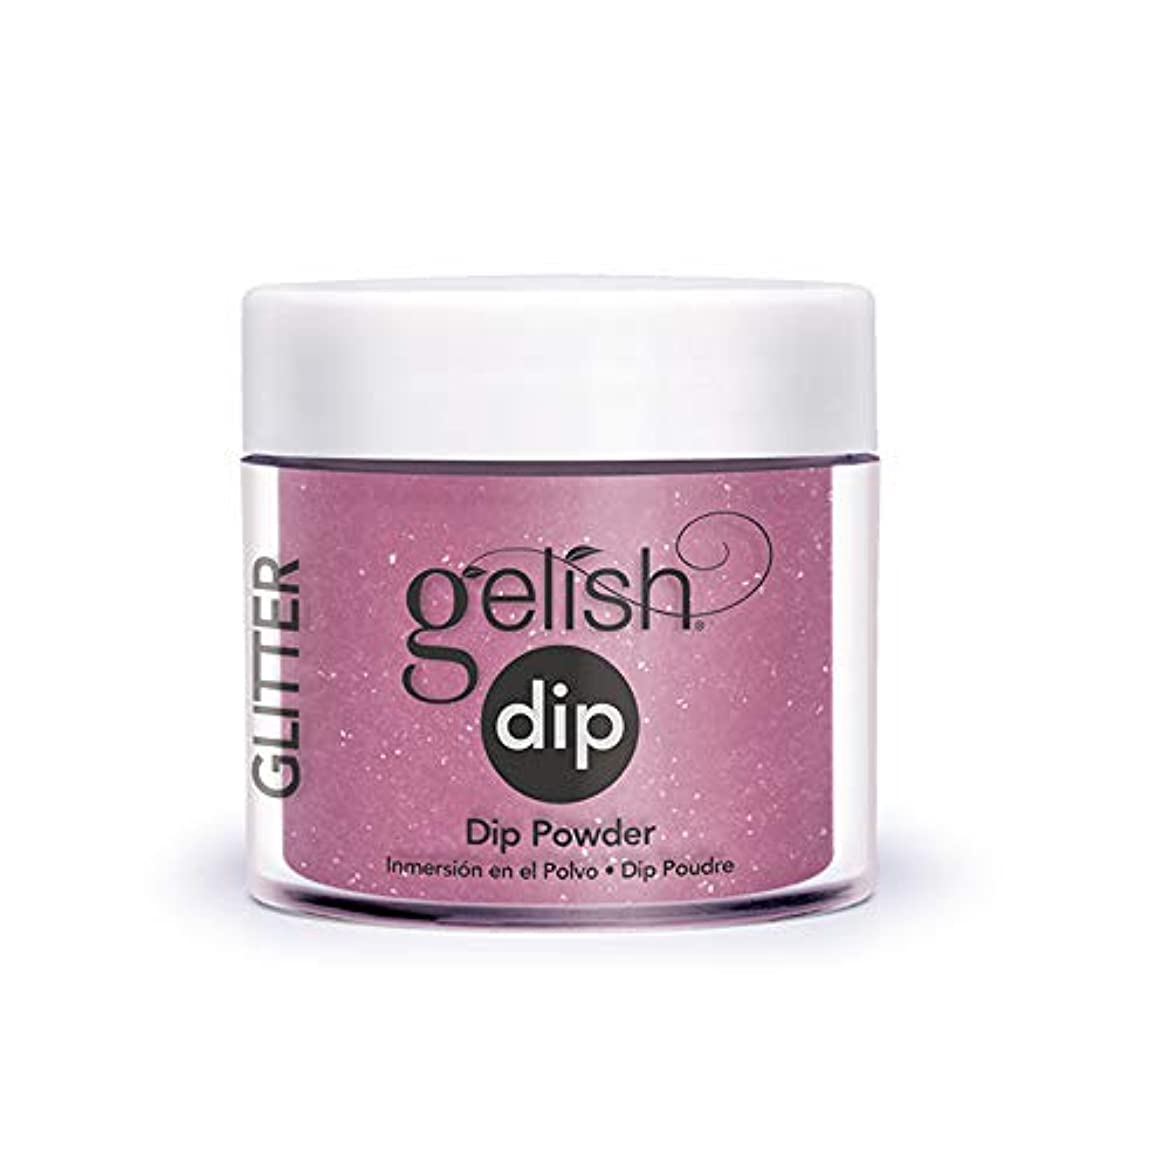 感心するボランティアメンダシティHarmony Gelish - Acrylic Dip Powder - High Bridge - 23g / 0.8oz